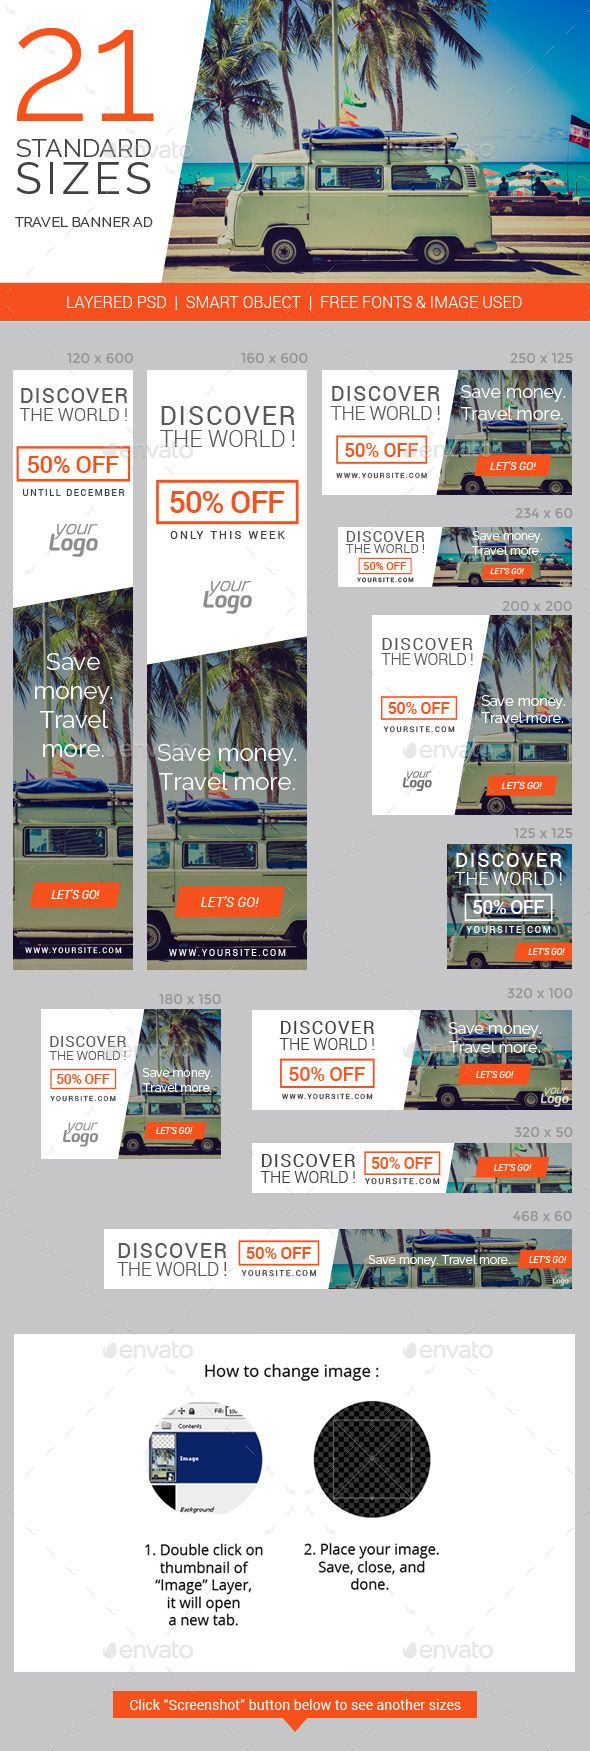 Travel & Vacation Web Ad Marketing Banners Template PSD   Buy and Download: http://graphicriver.net/item/travel-vacation-web-ad-marketing-banners/8998083?WT.ac=category_thumb&WT.z_author=vectorcaptain&ref=ksioks